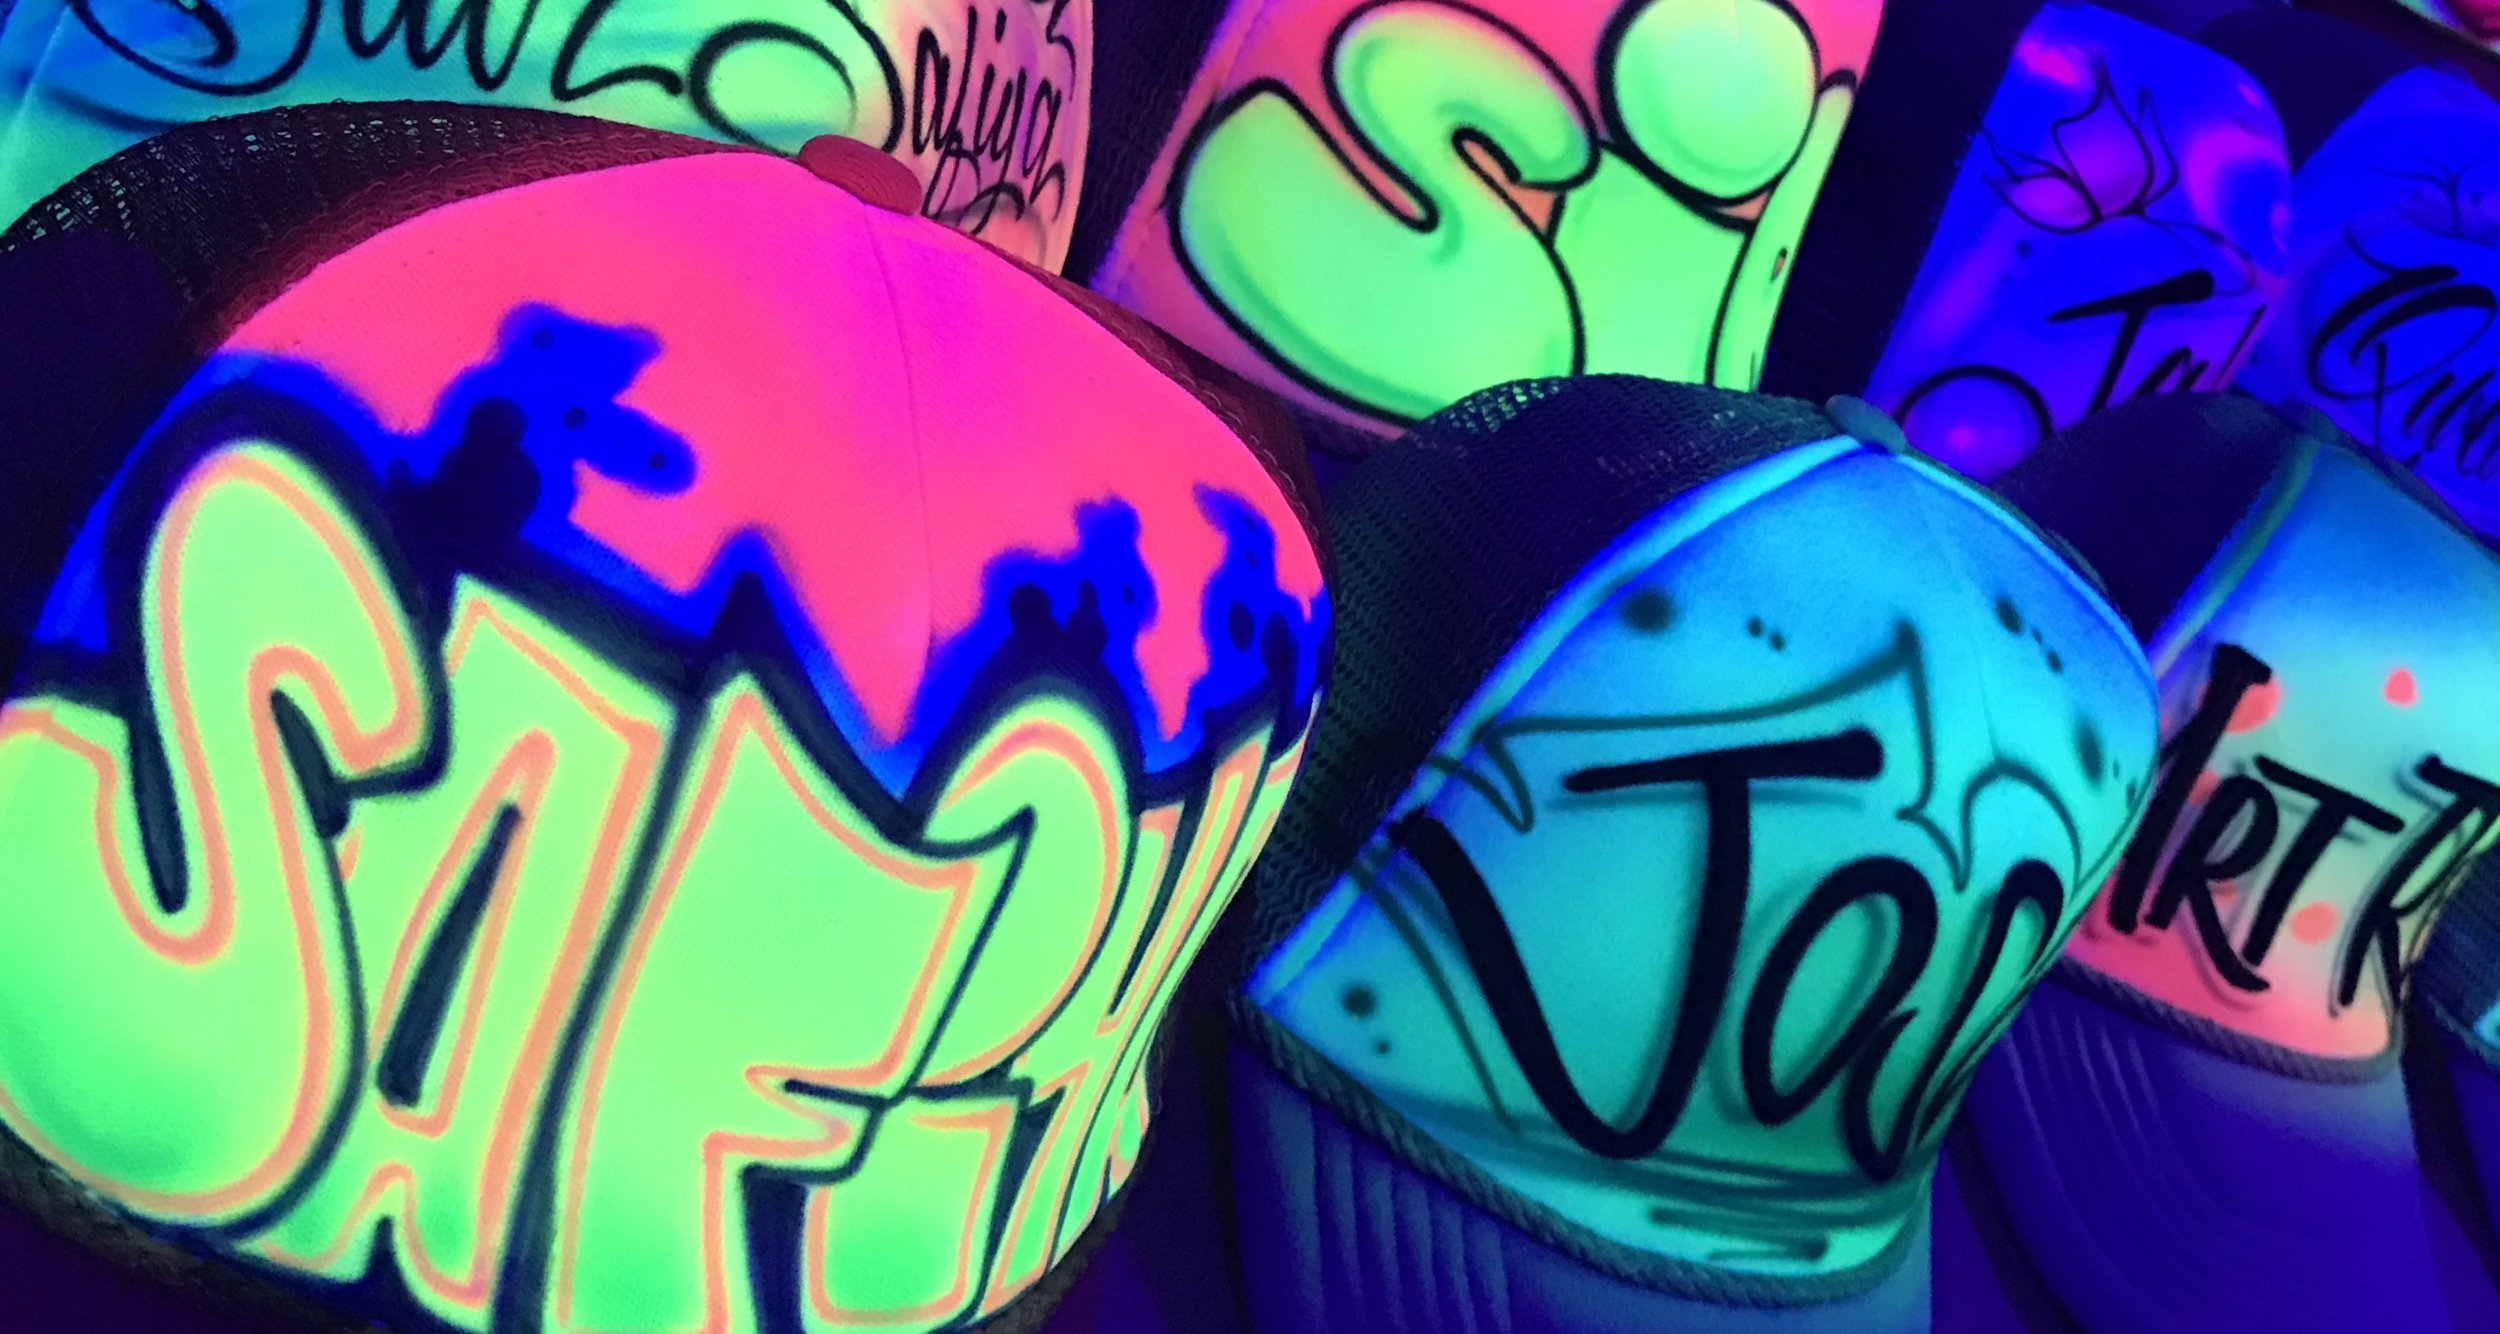 Airbrushed Trucker hats Blacklight glow paint closeup